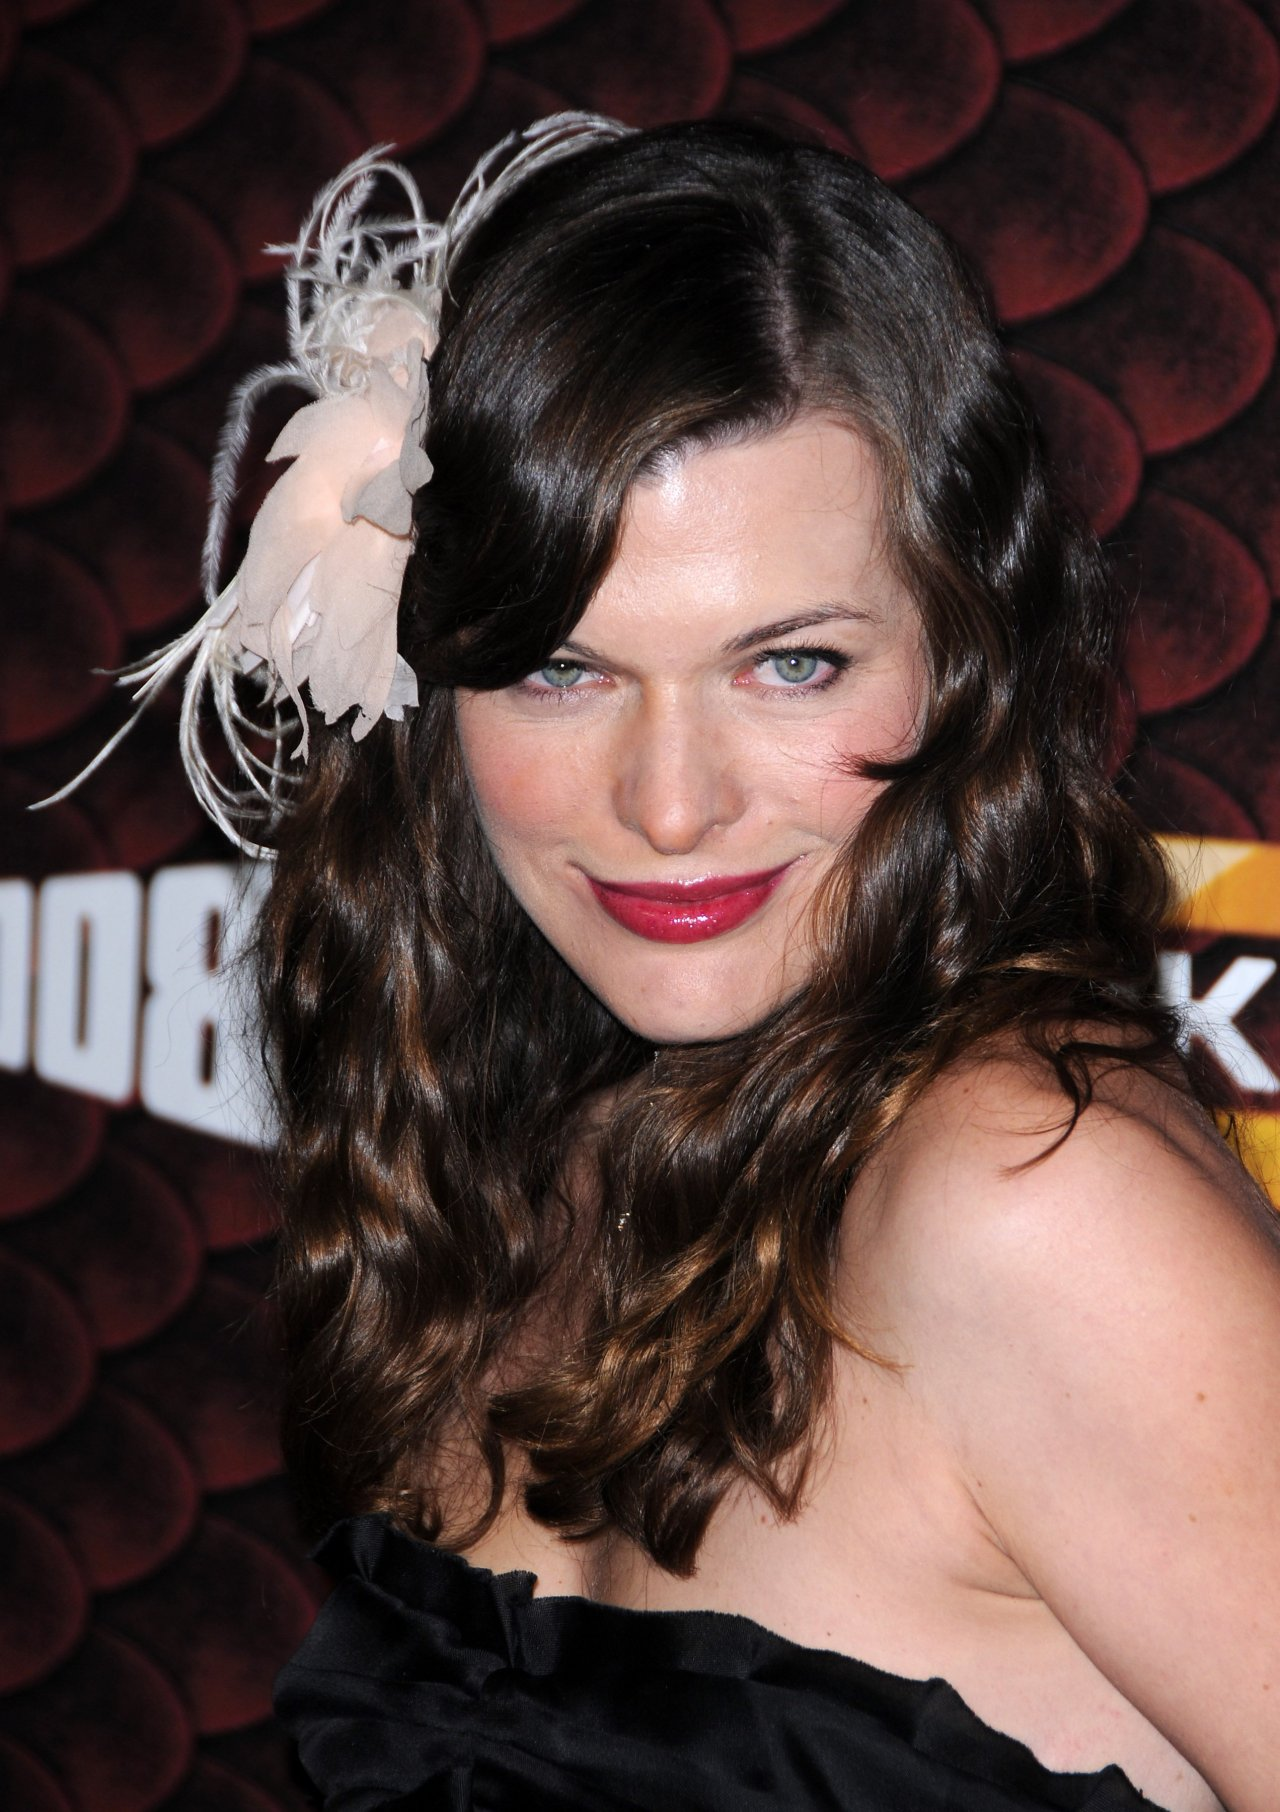 Milla Jovovich leaked wallpapers